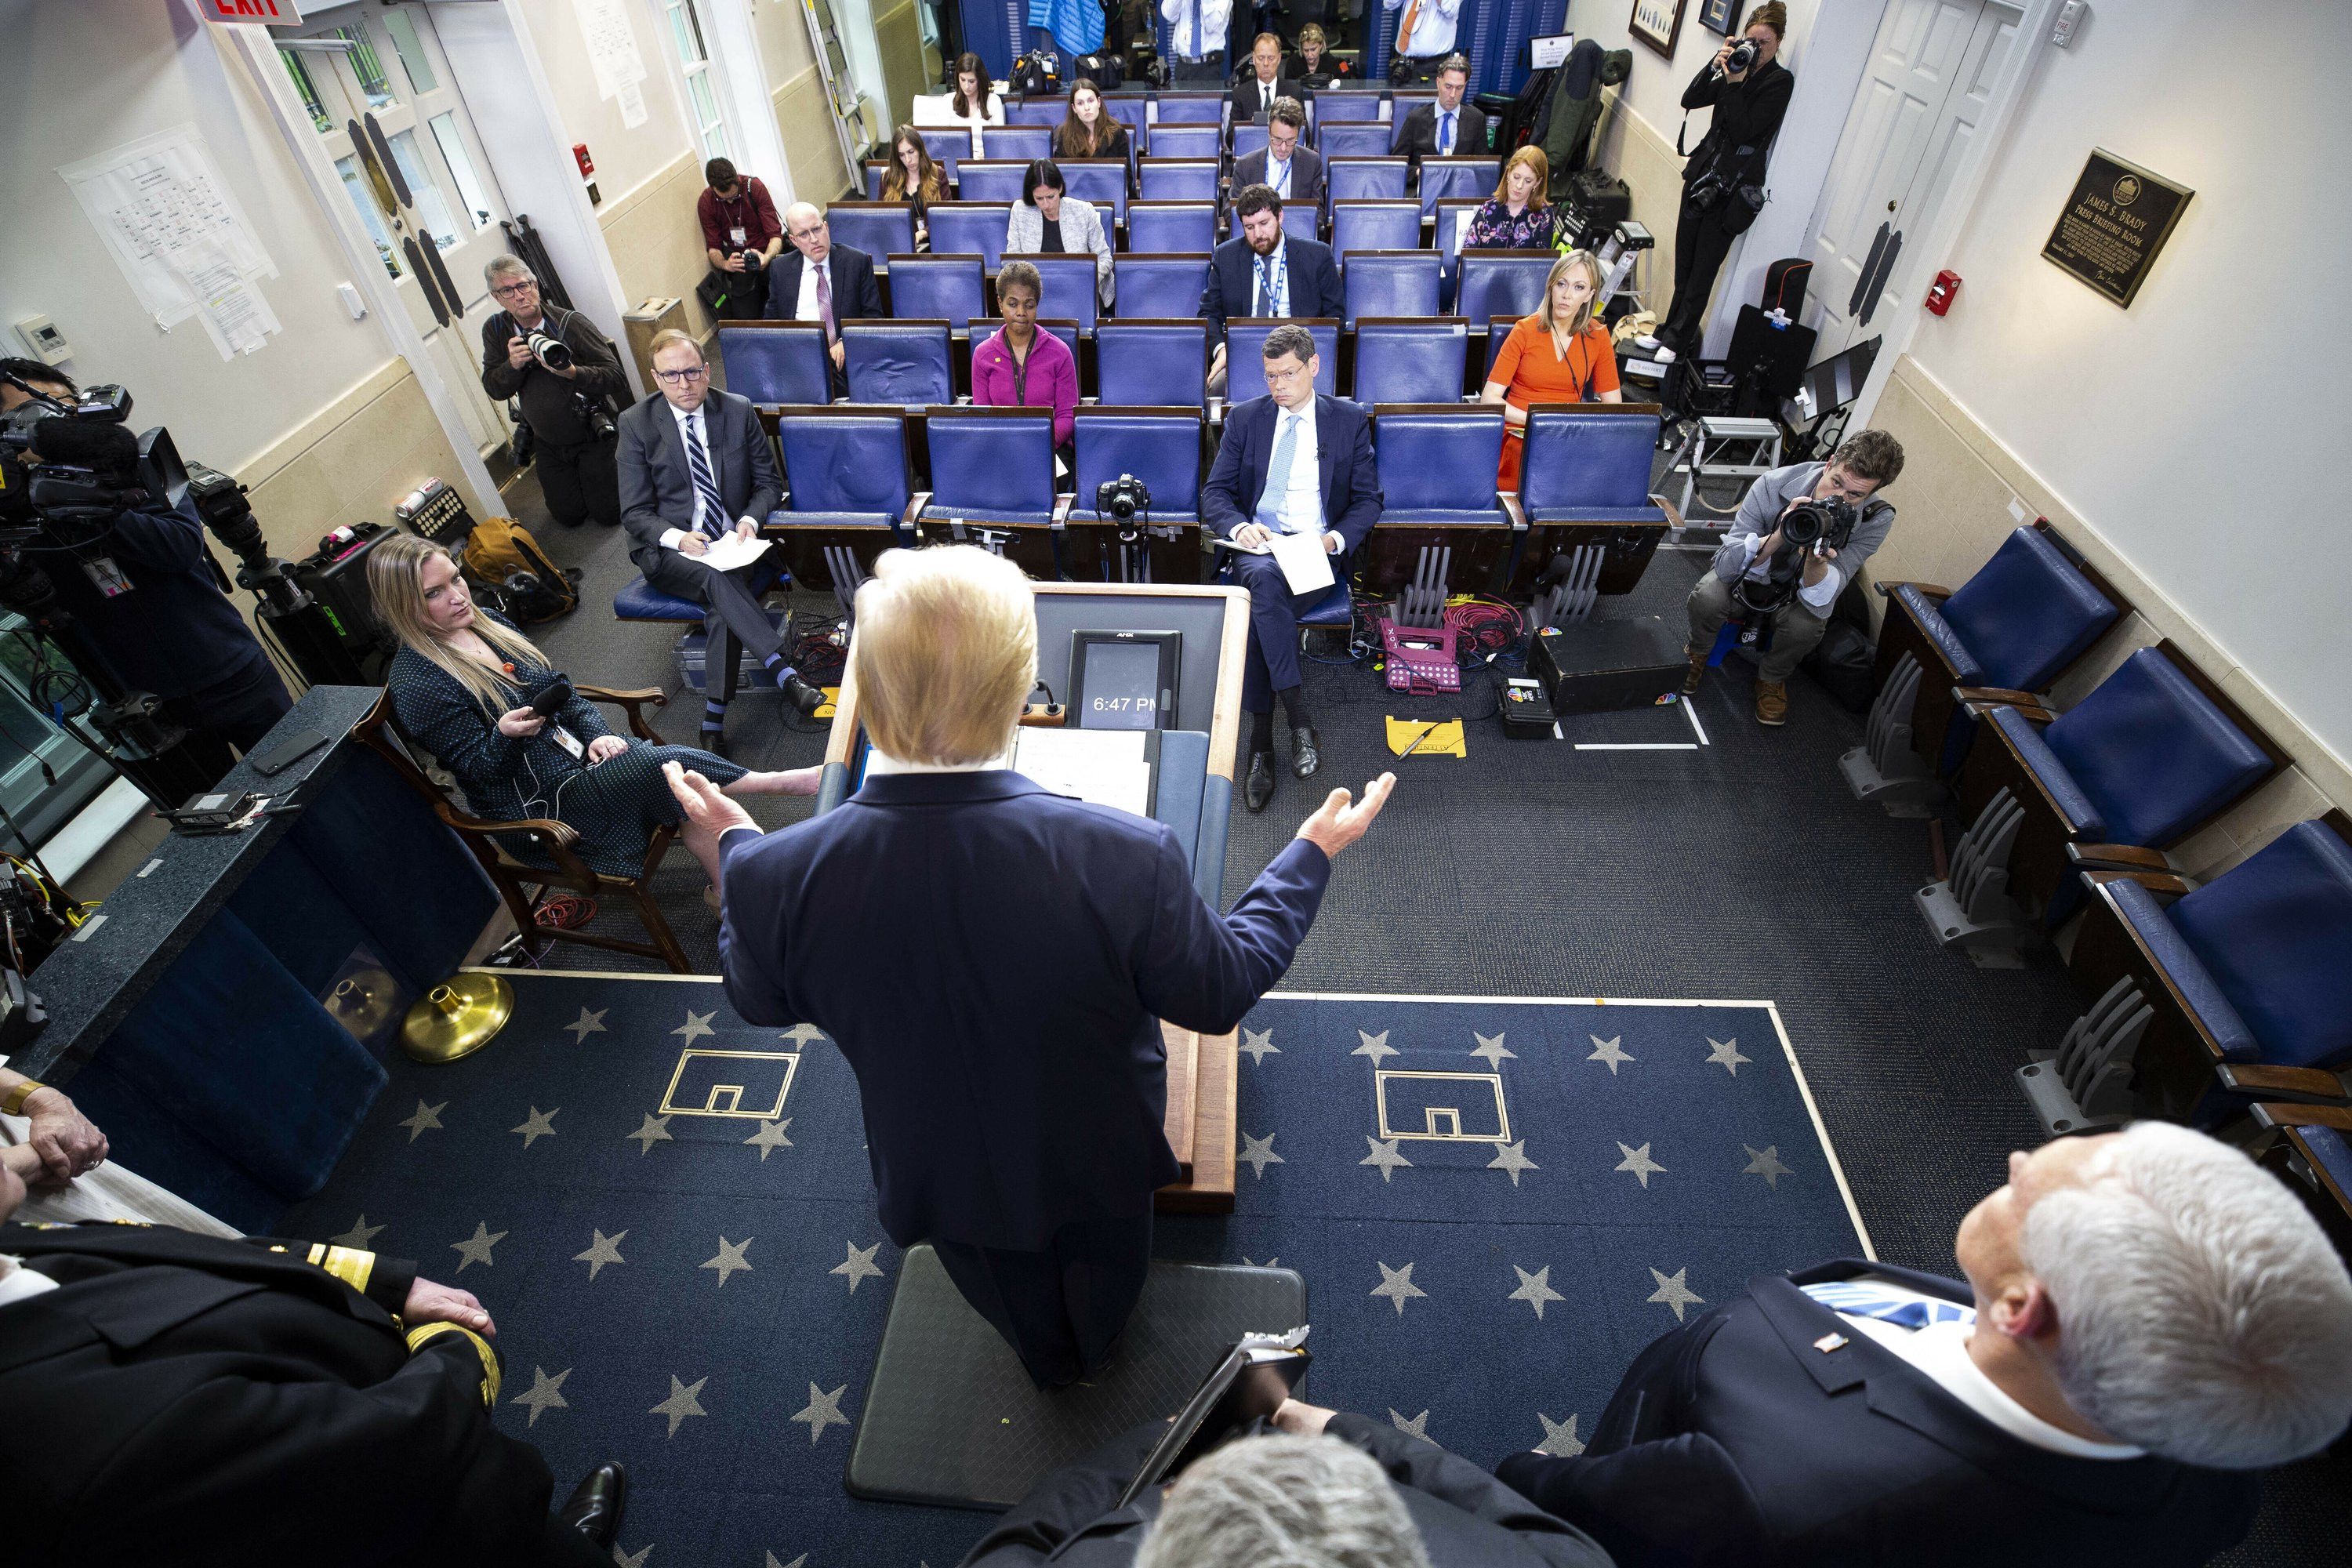 Networks face decision: How long to stick with Trump?